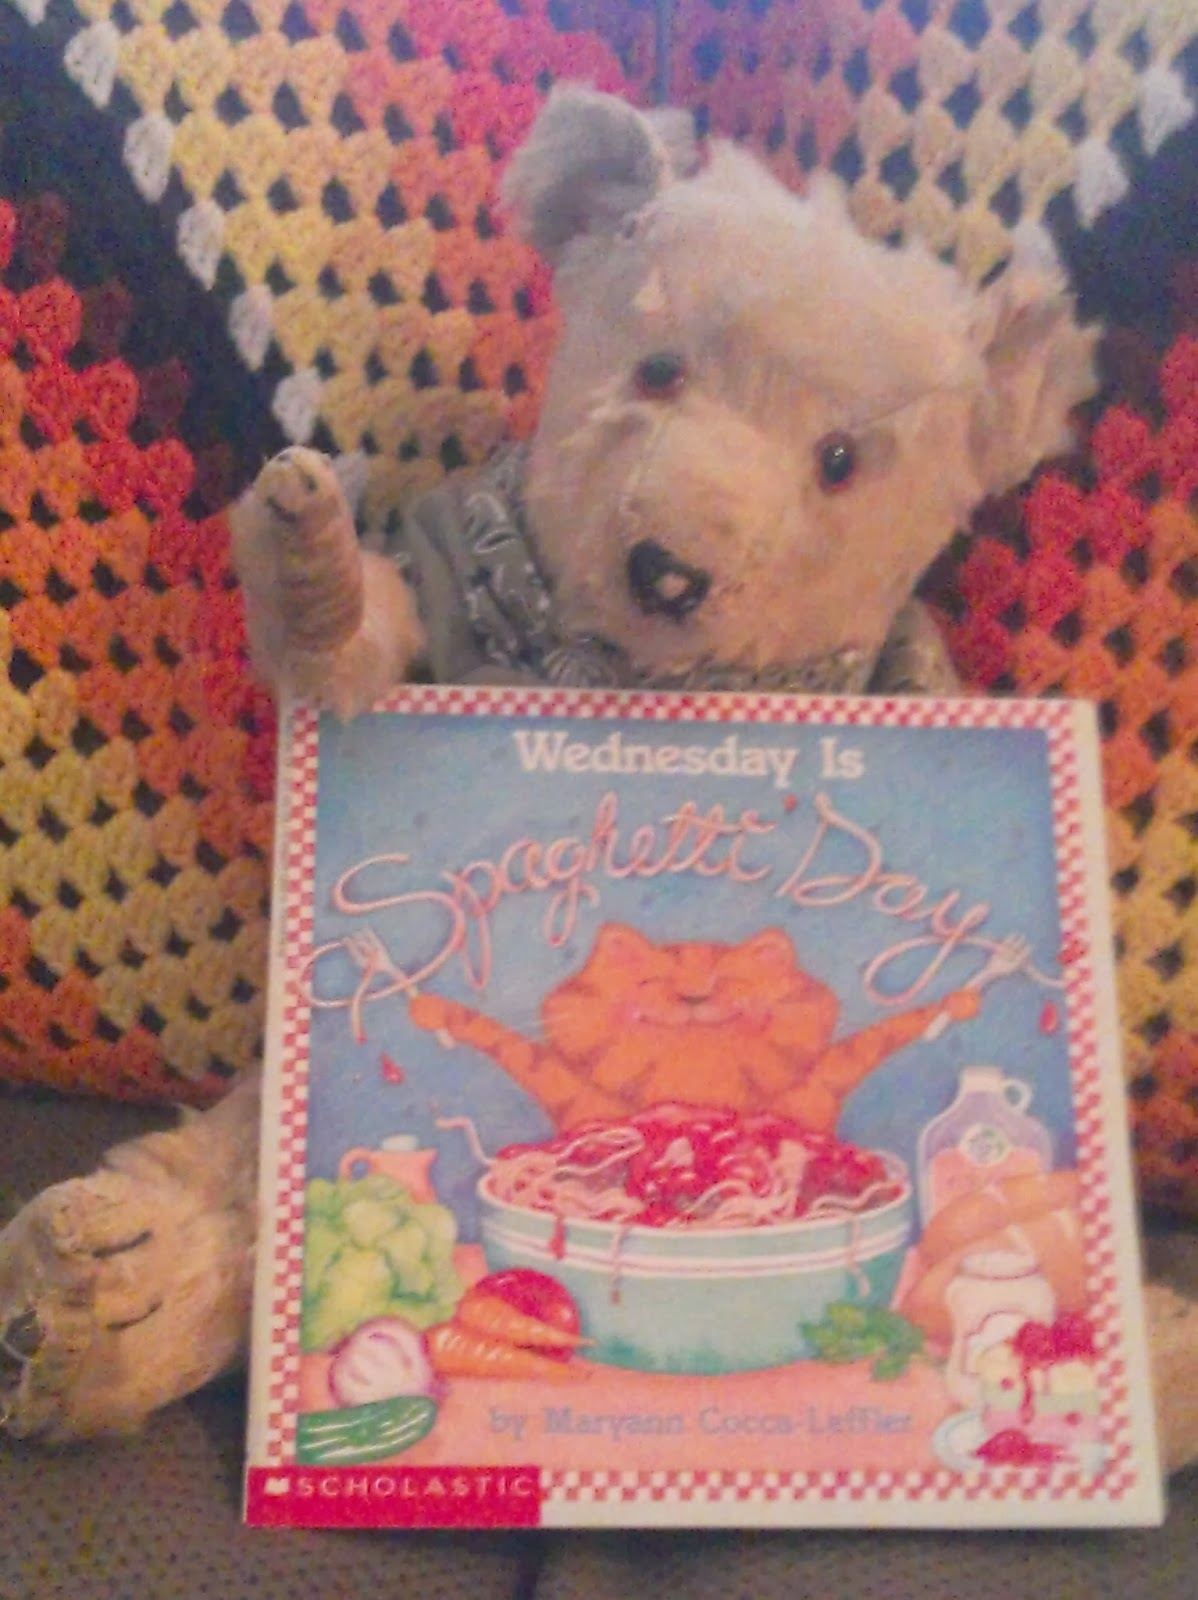 teddy bear holding picture book